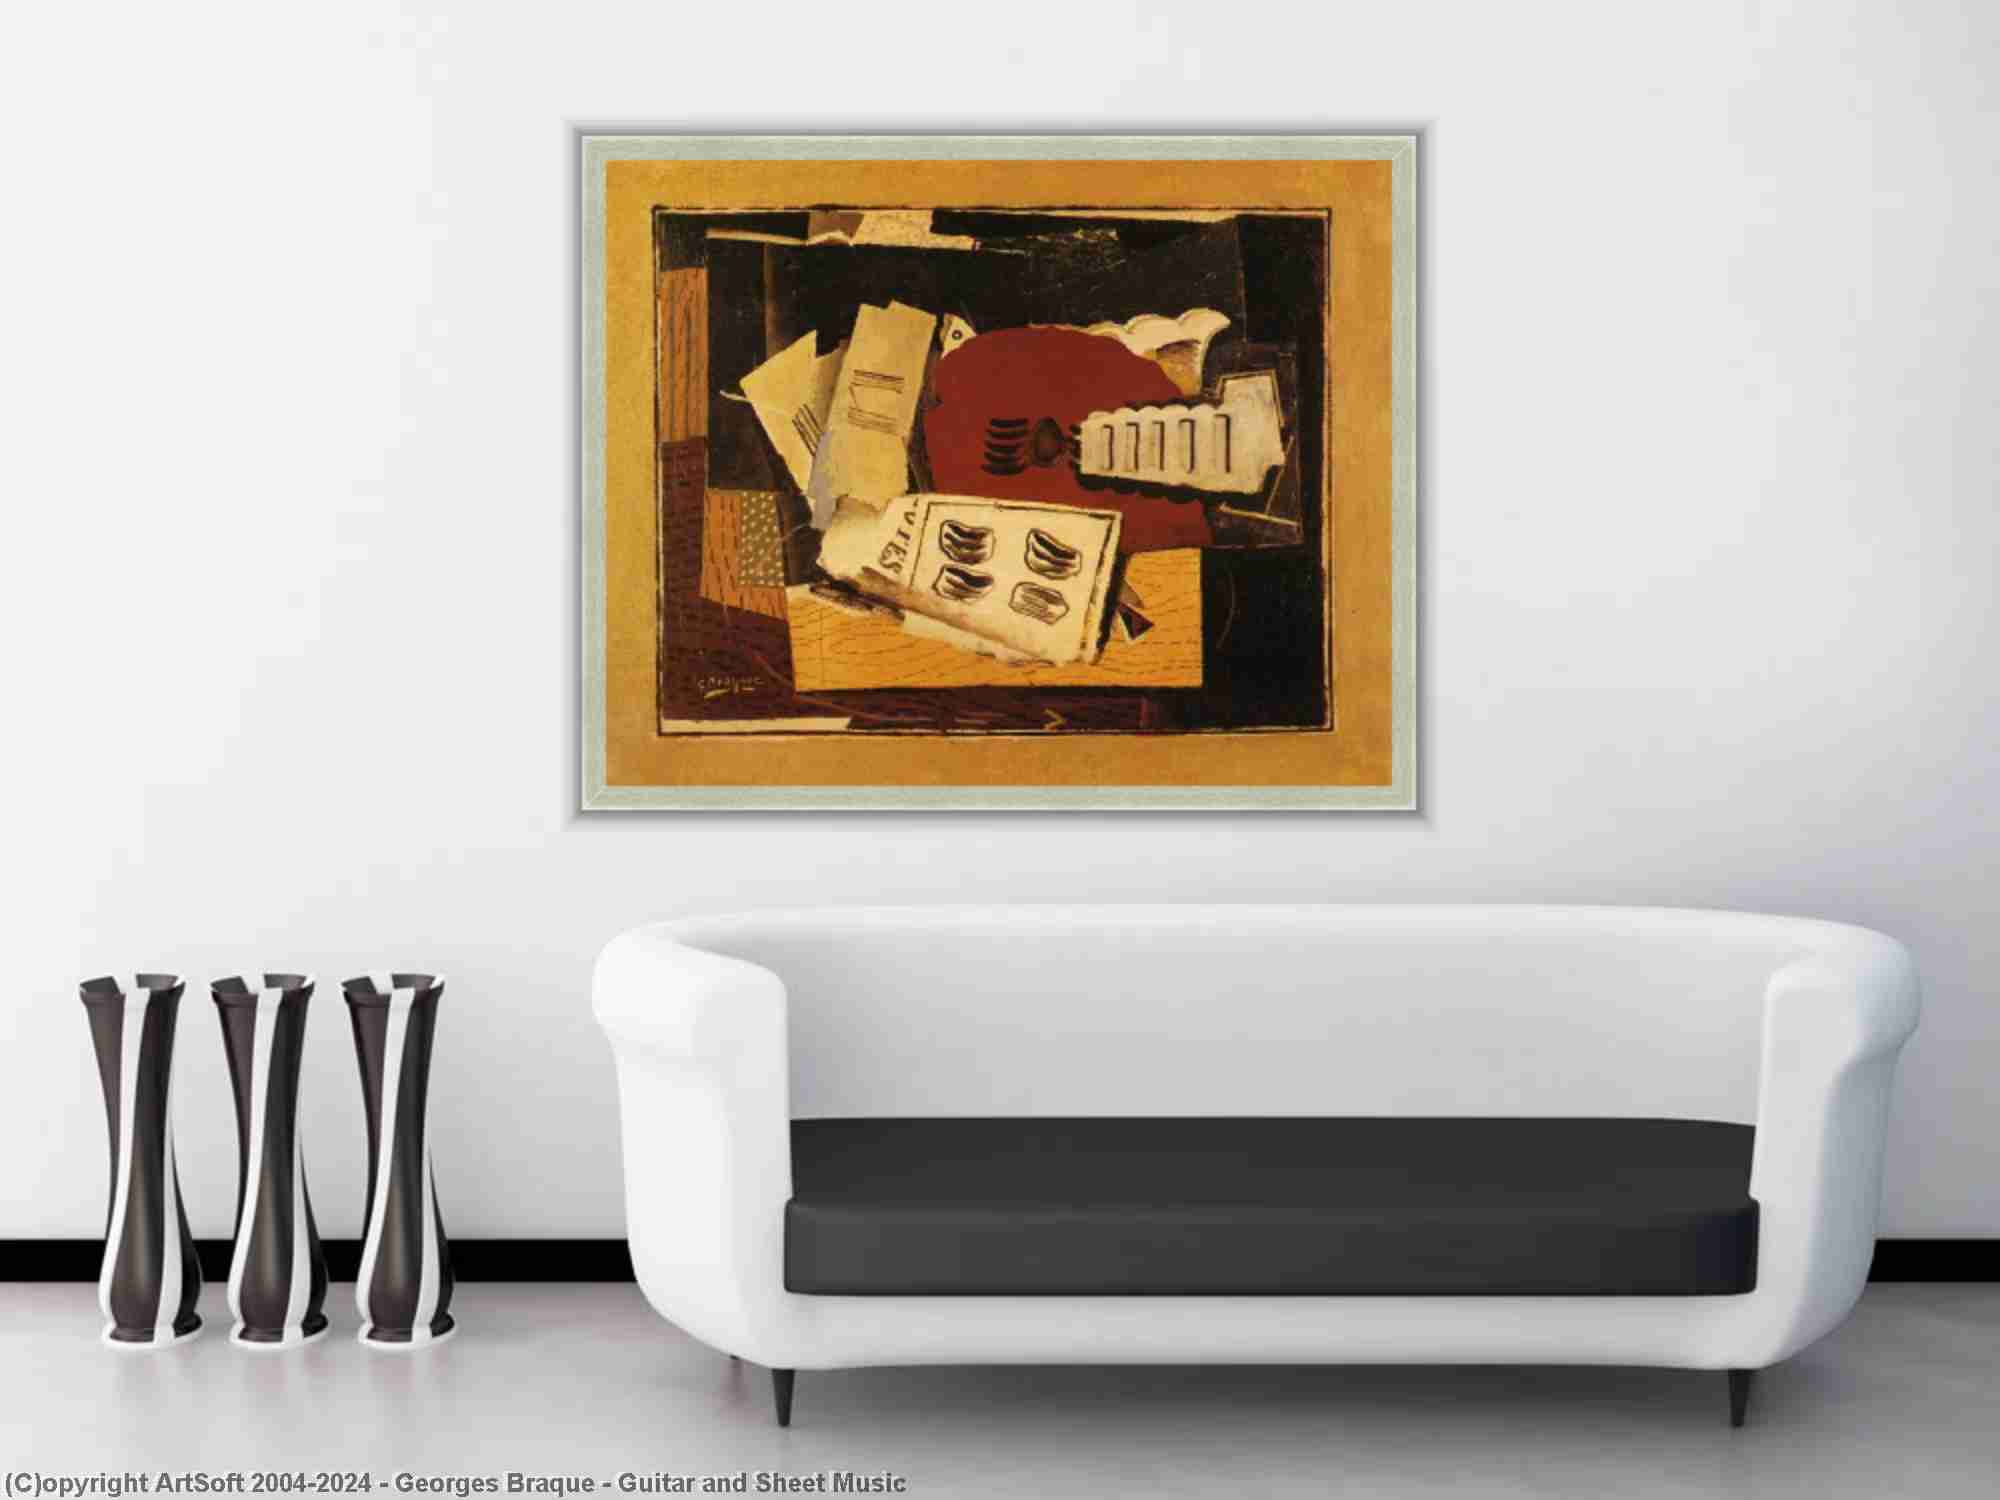 Georges Braque - Guitar and Sheet Music